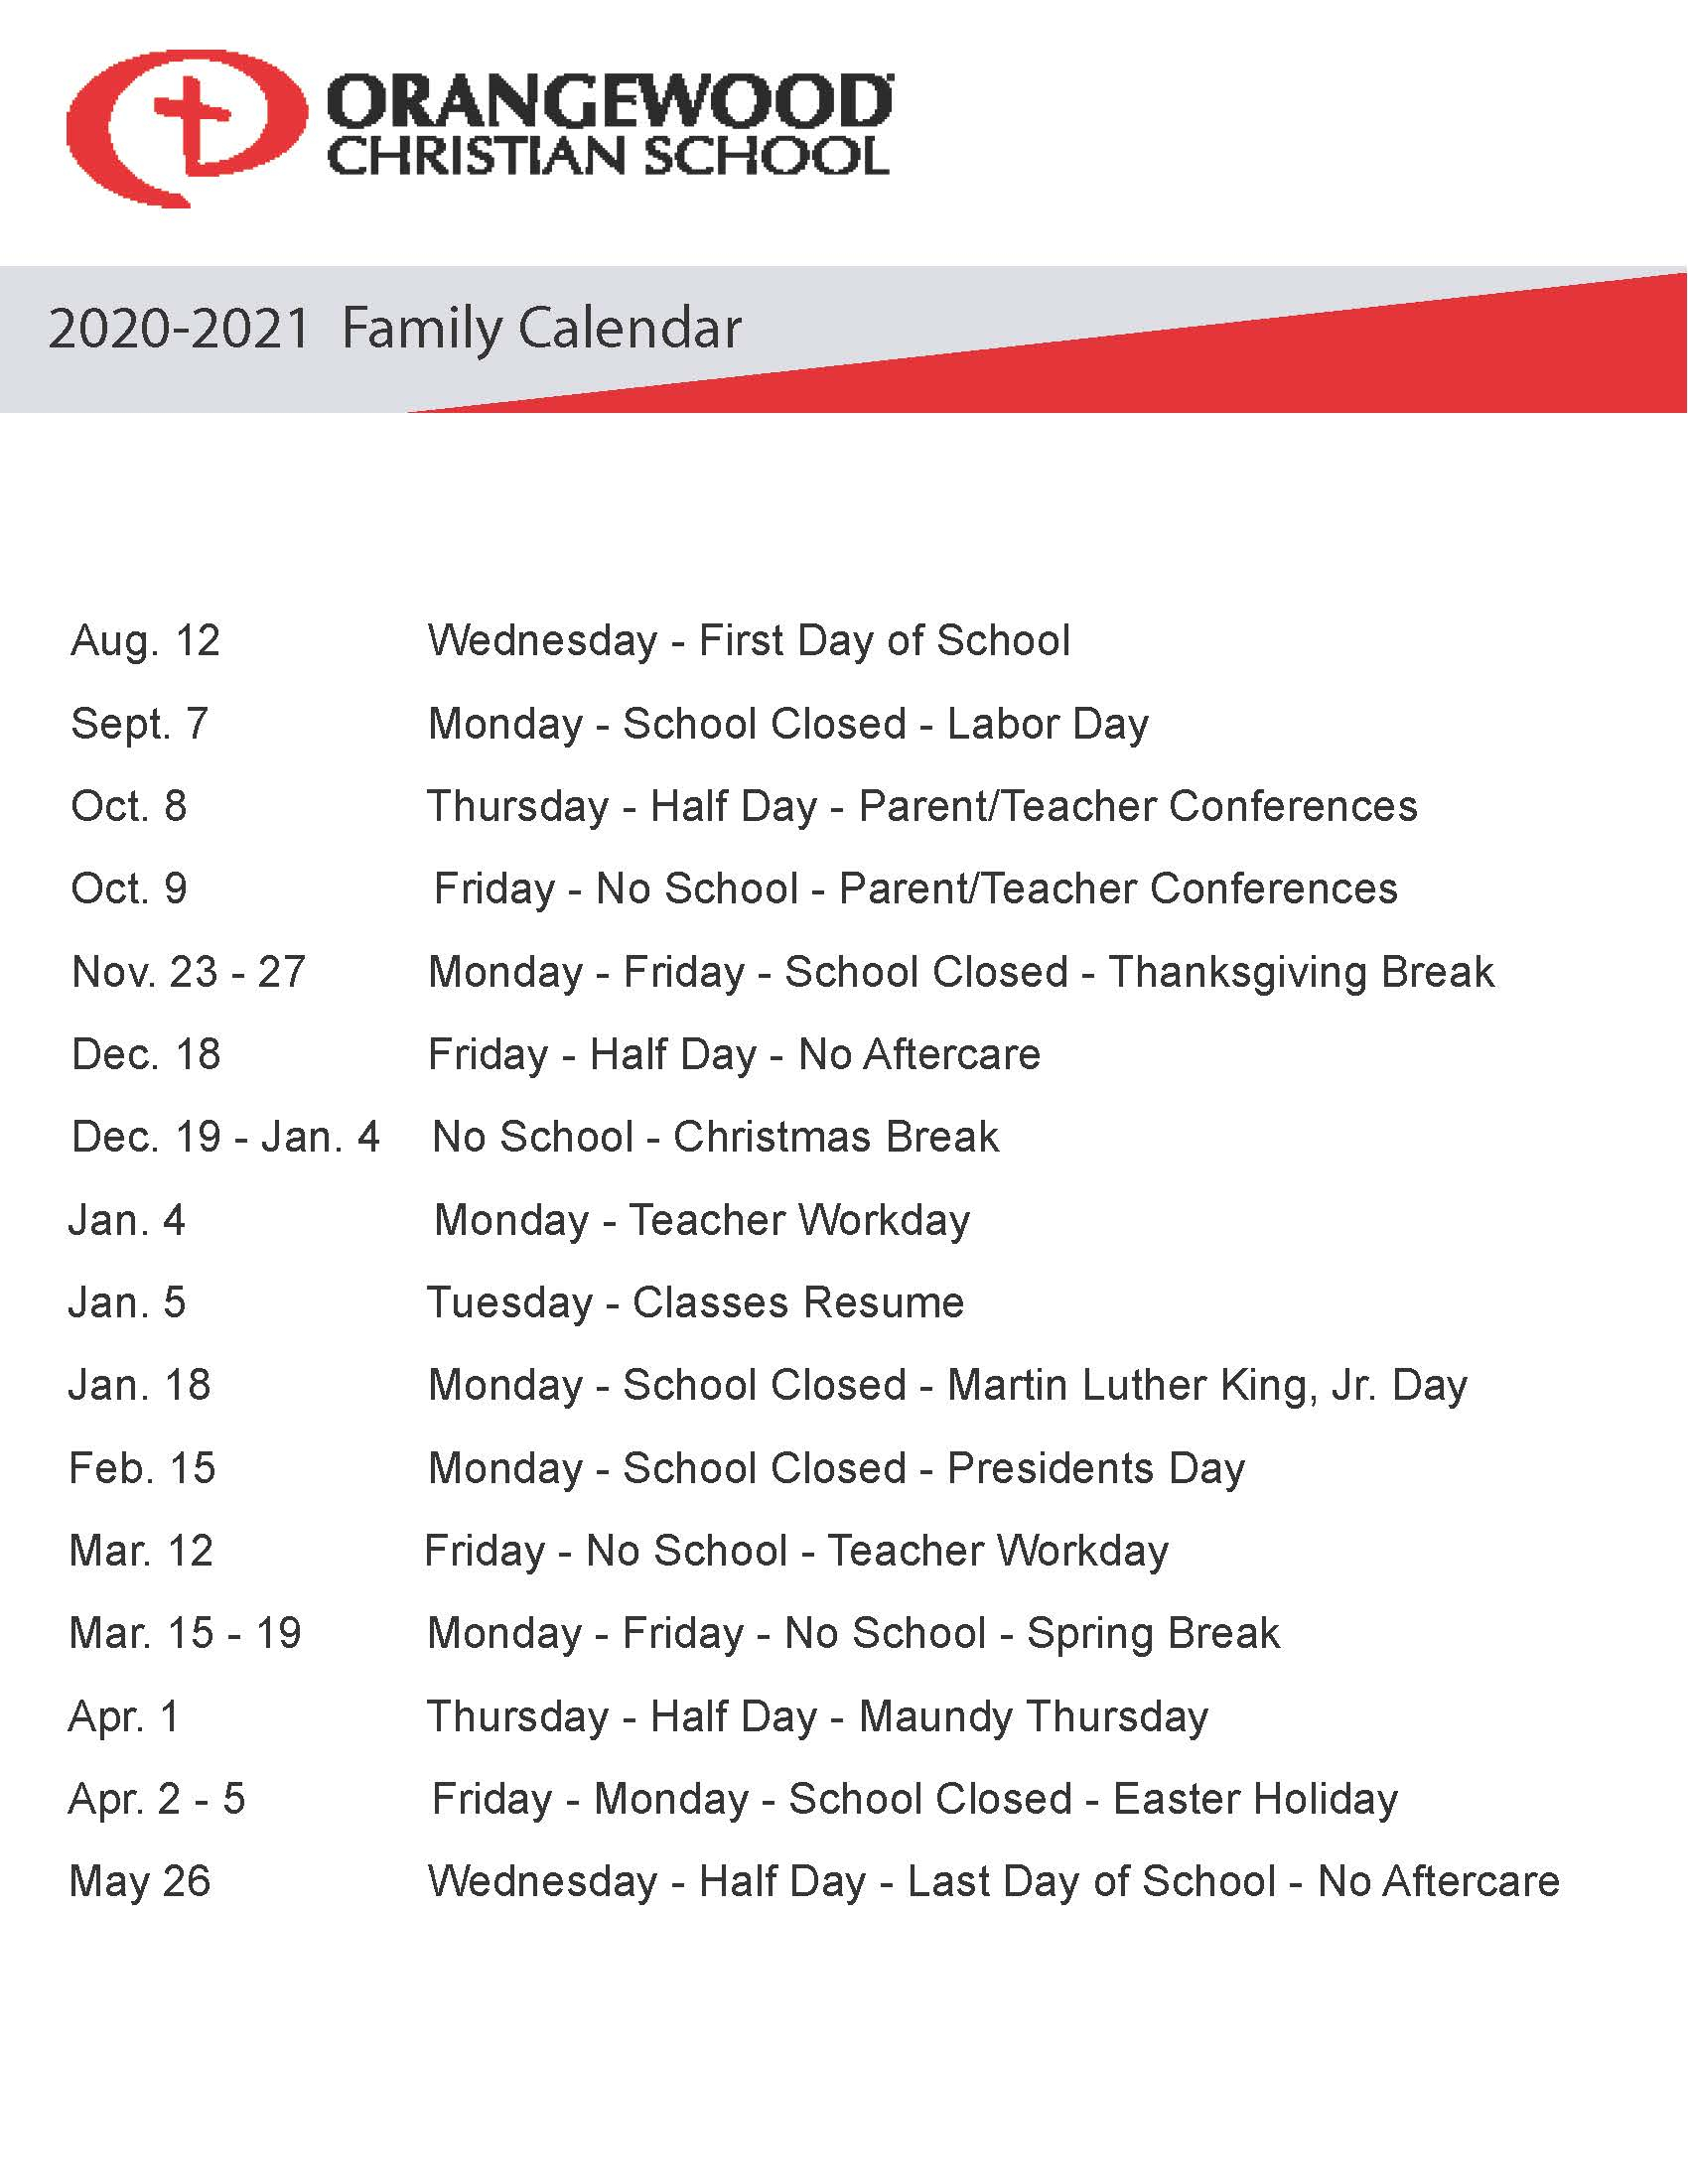 2020-2021 Family Calendar - Orangewood Christian School intended for Full Sail University Spring Calendar 202-2021